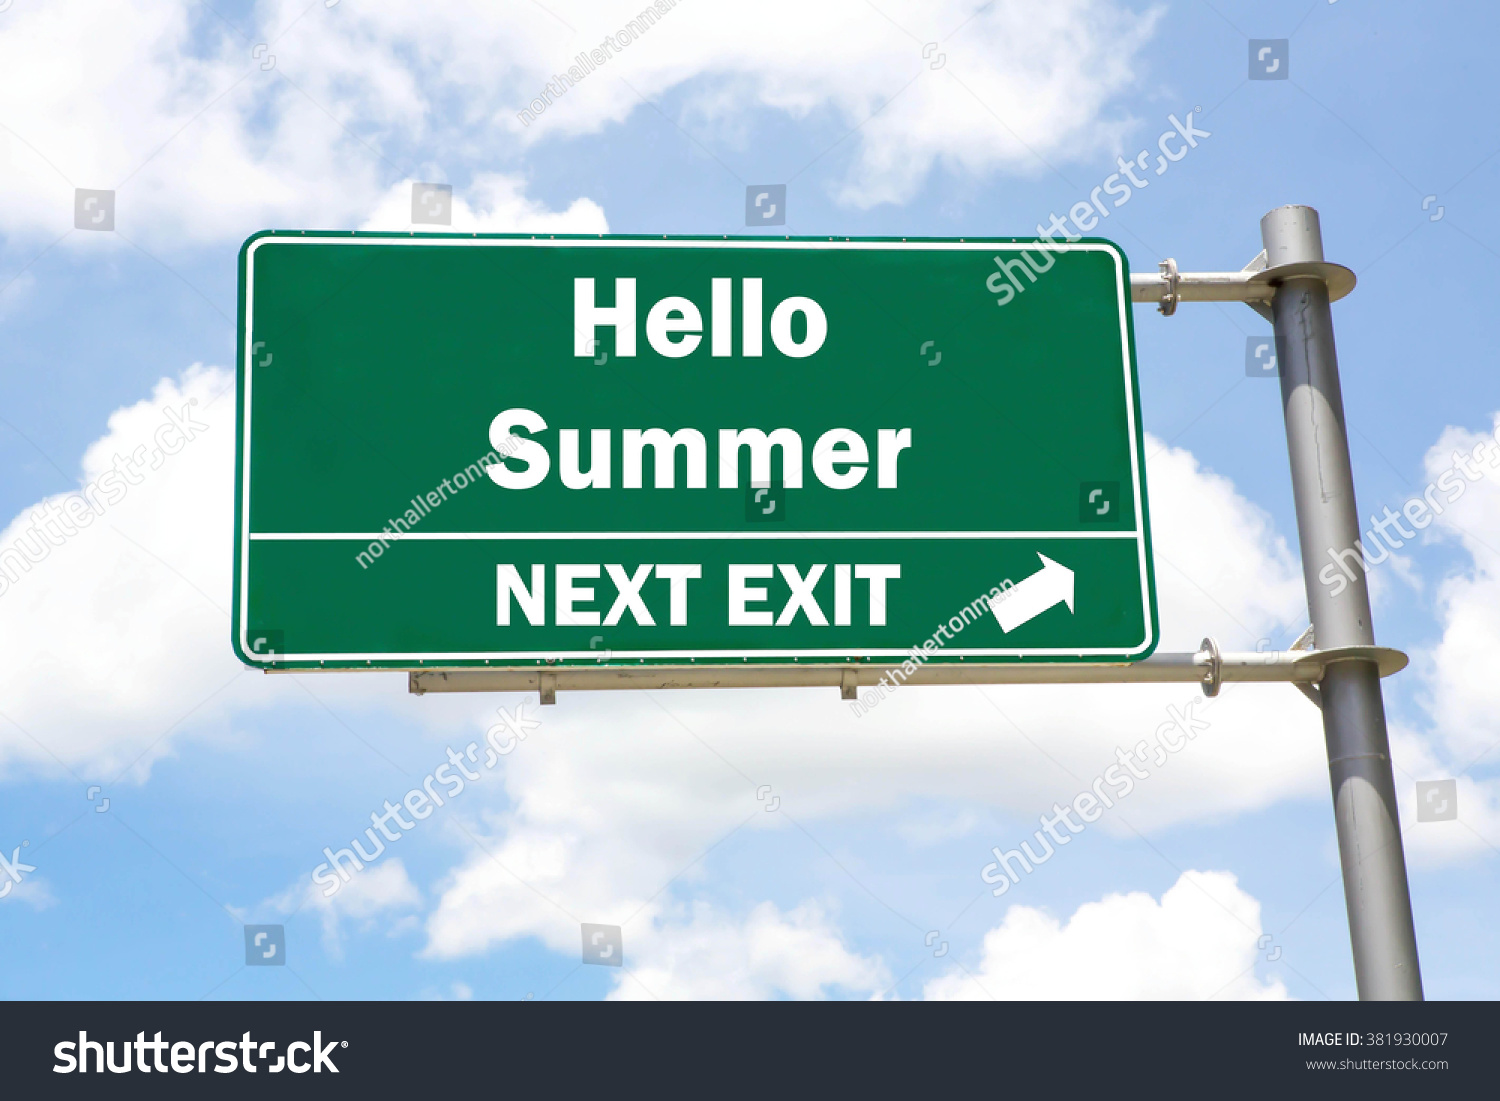 Green Overhead Road Sign With A Hello Summer Next Exit Concept Against A  Partly Cloudy Sky